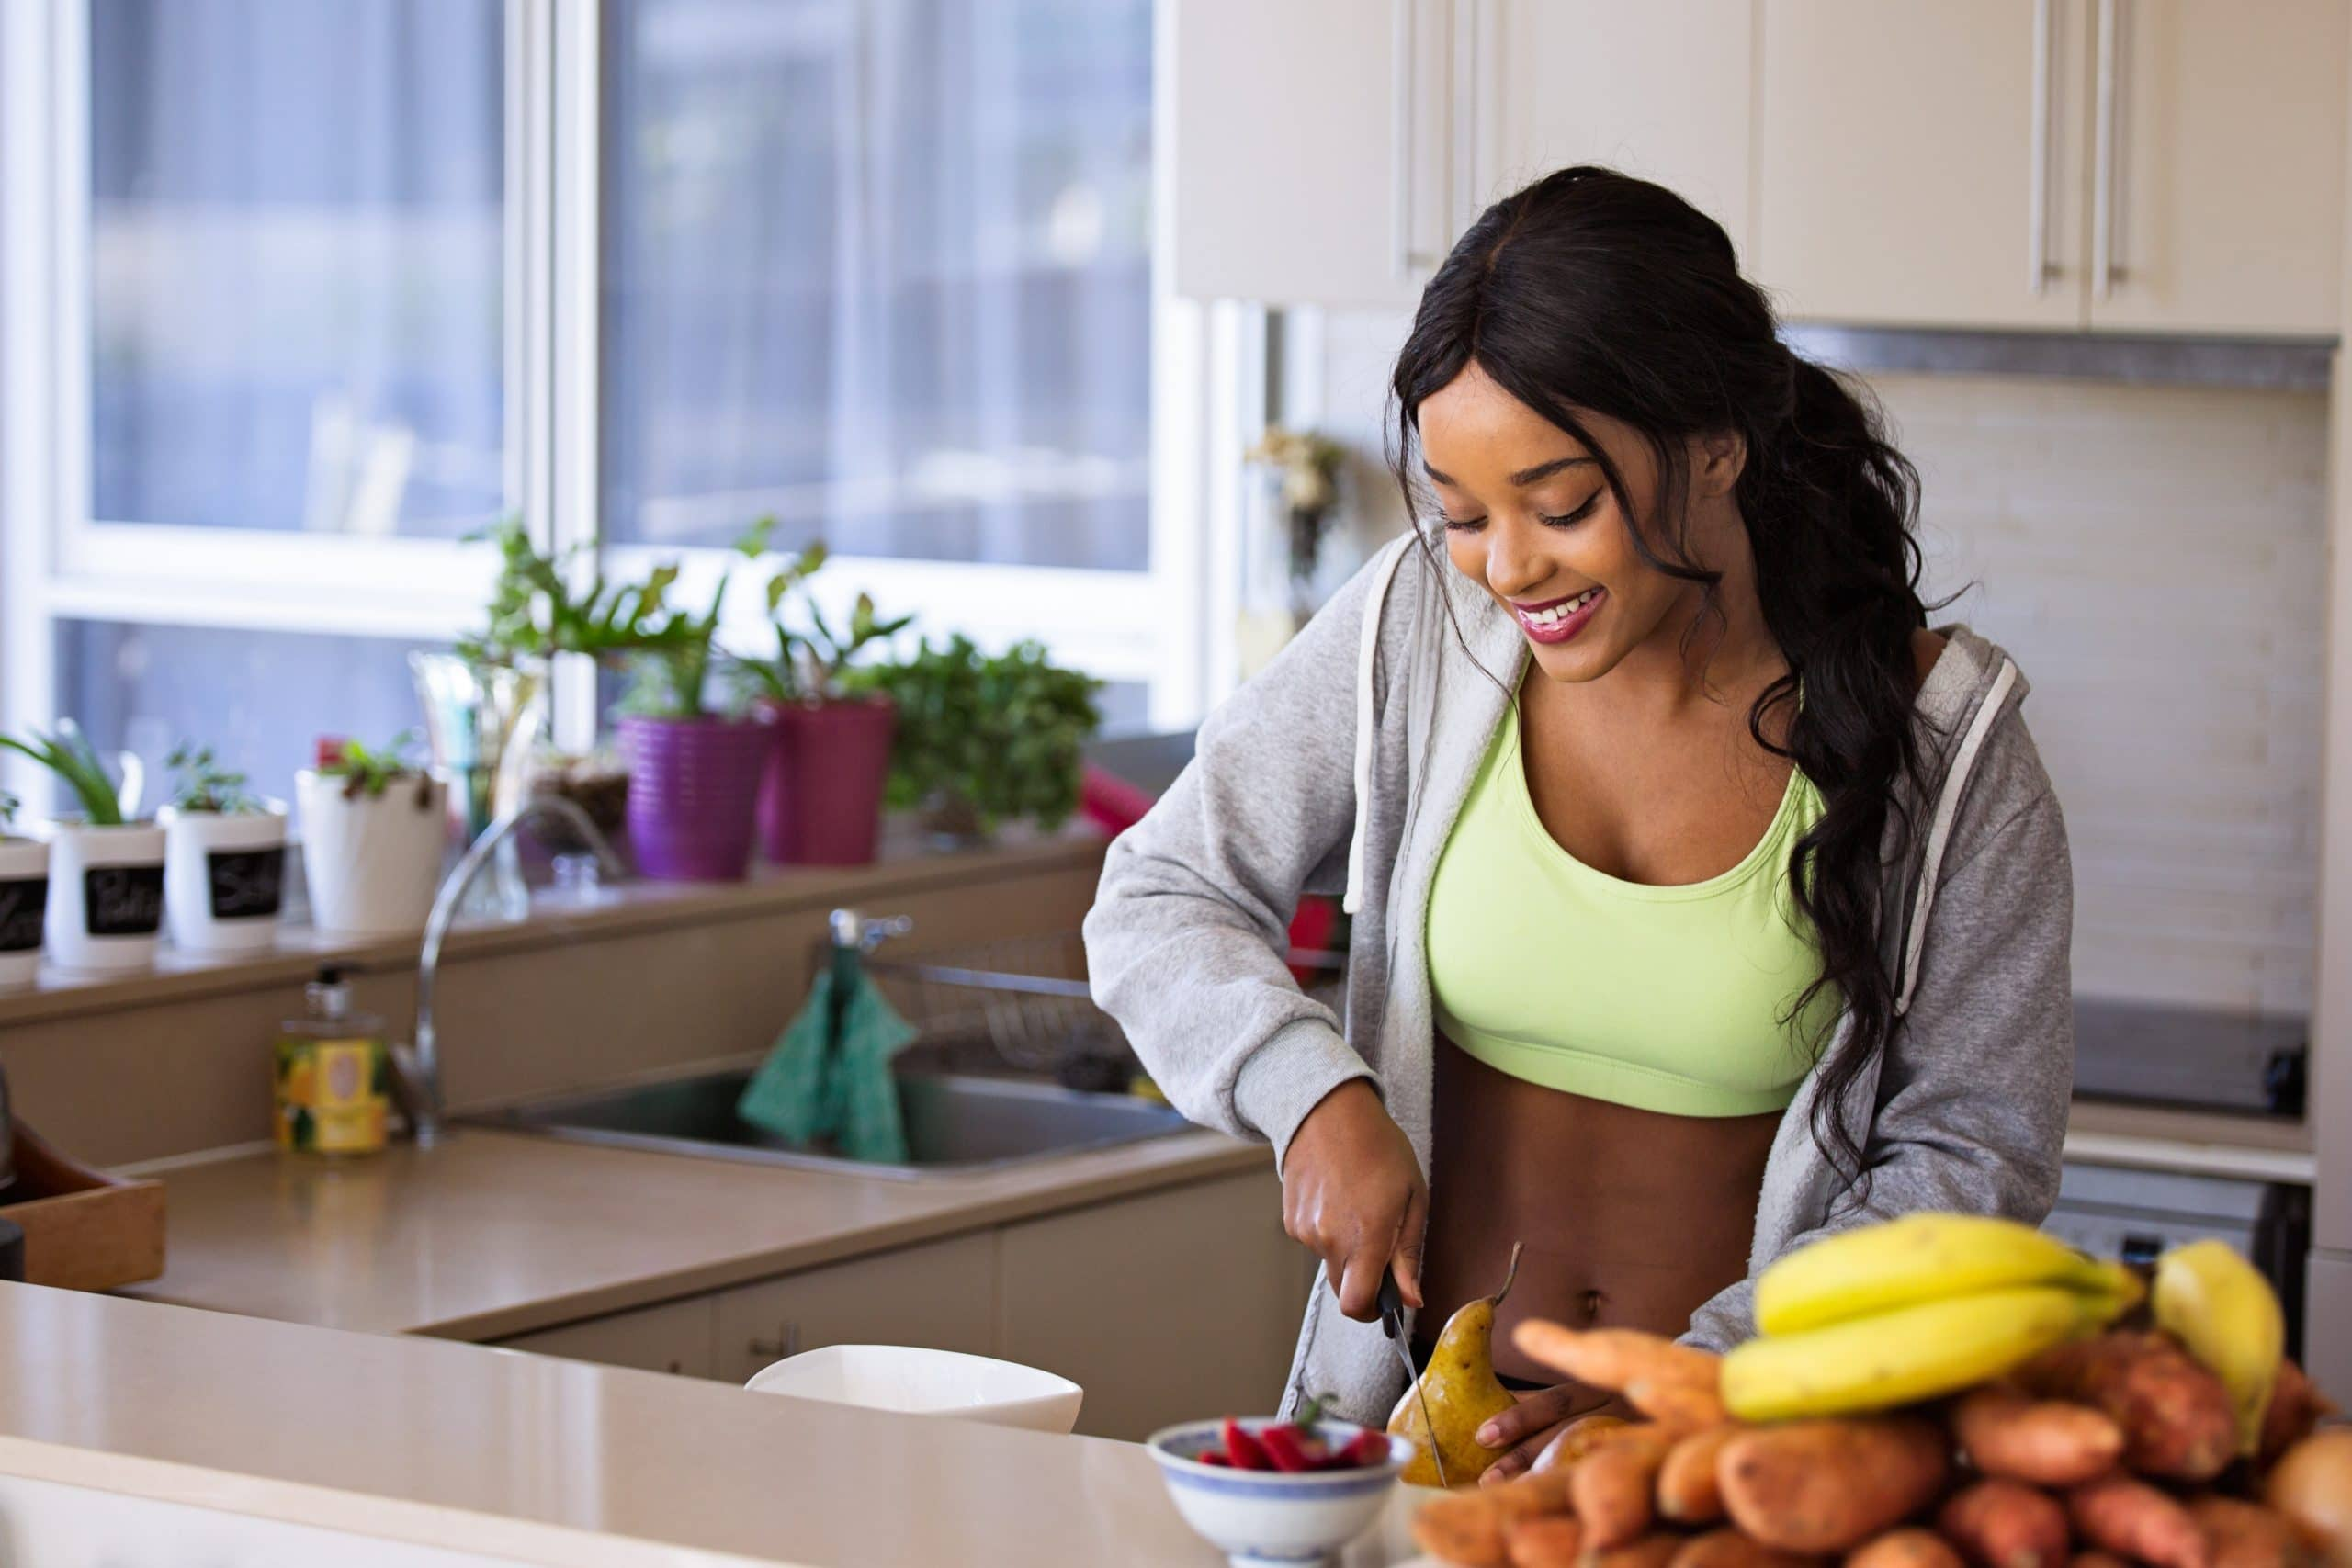 woman smiling while cutting fruit in kitchen